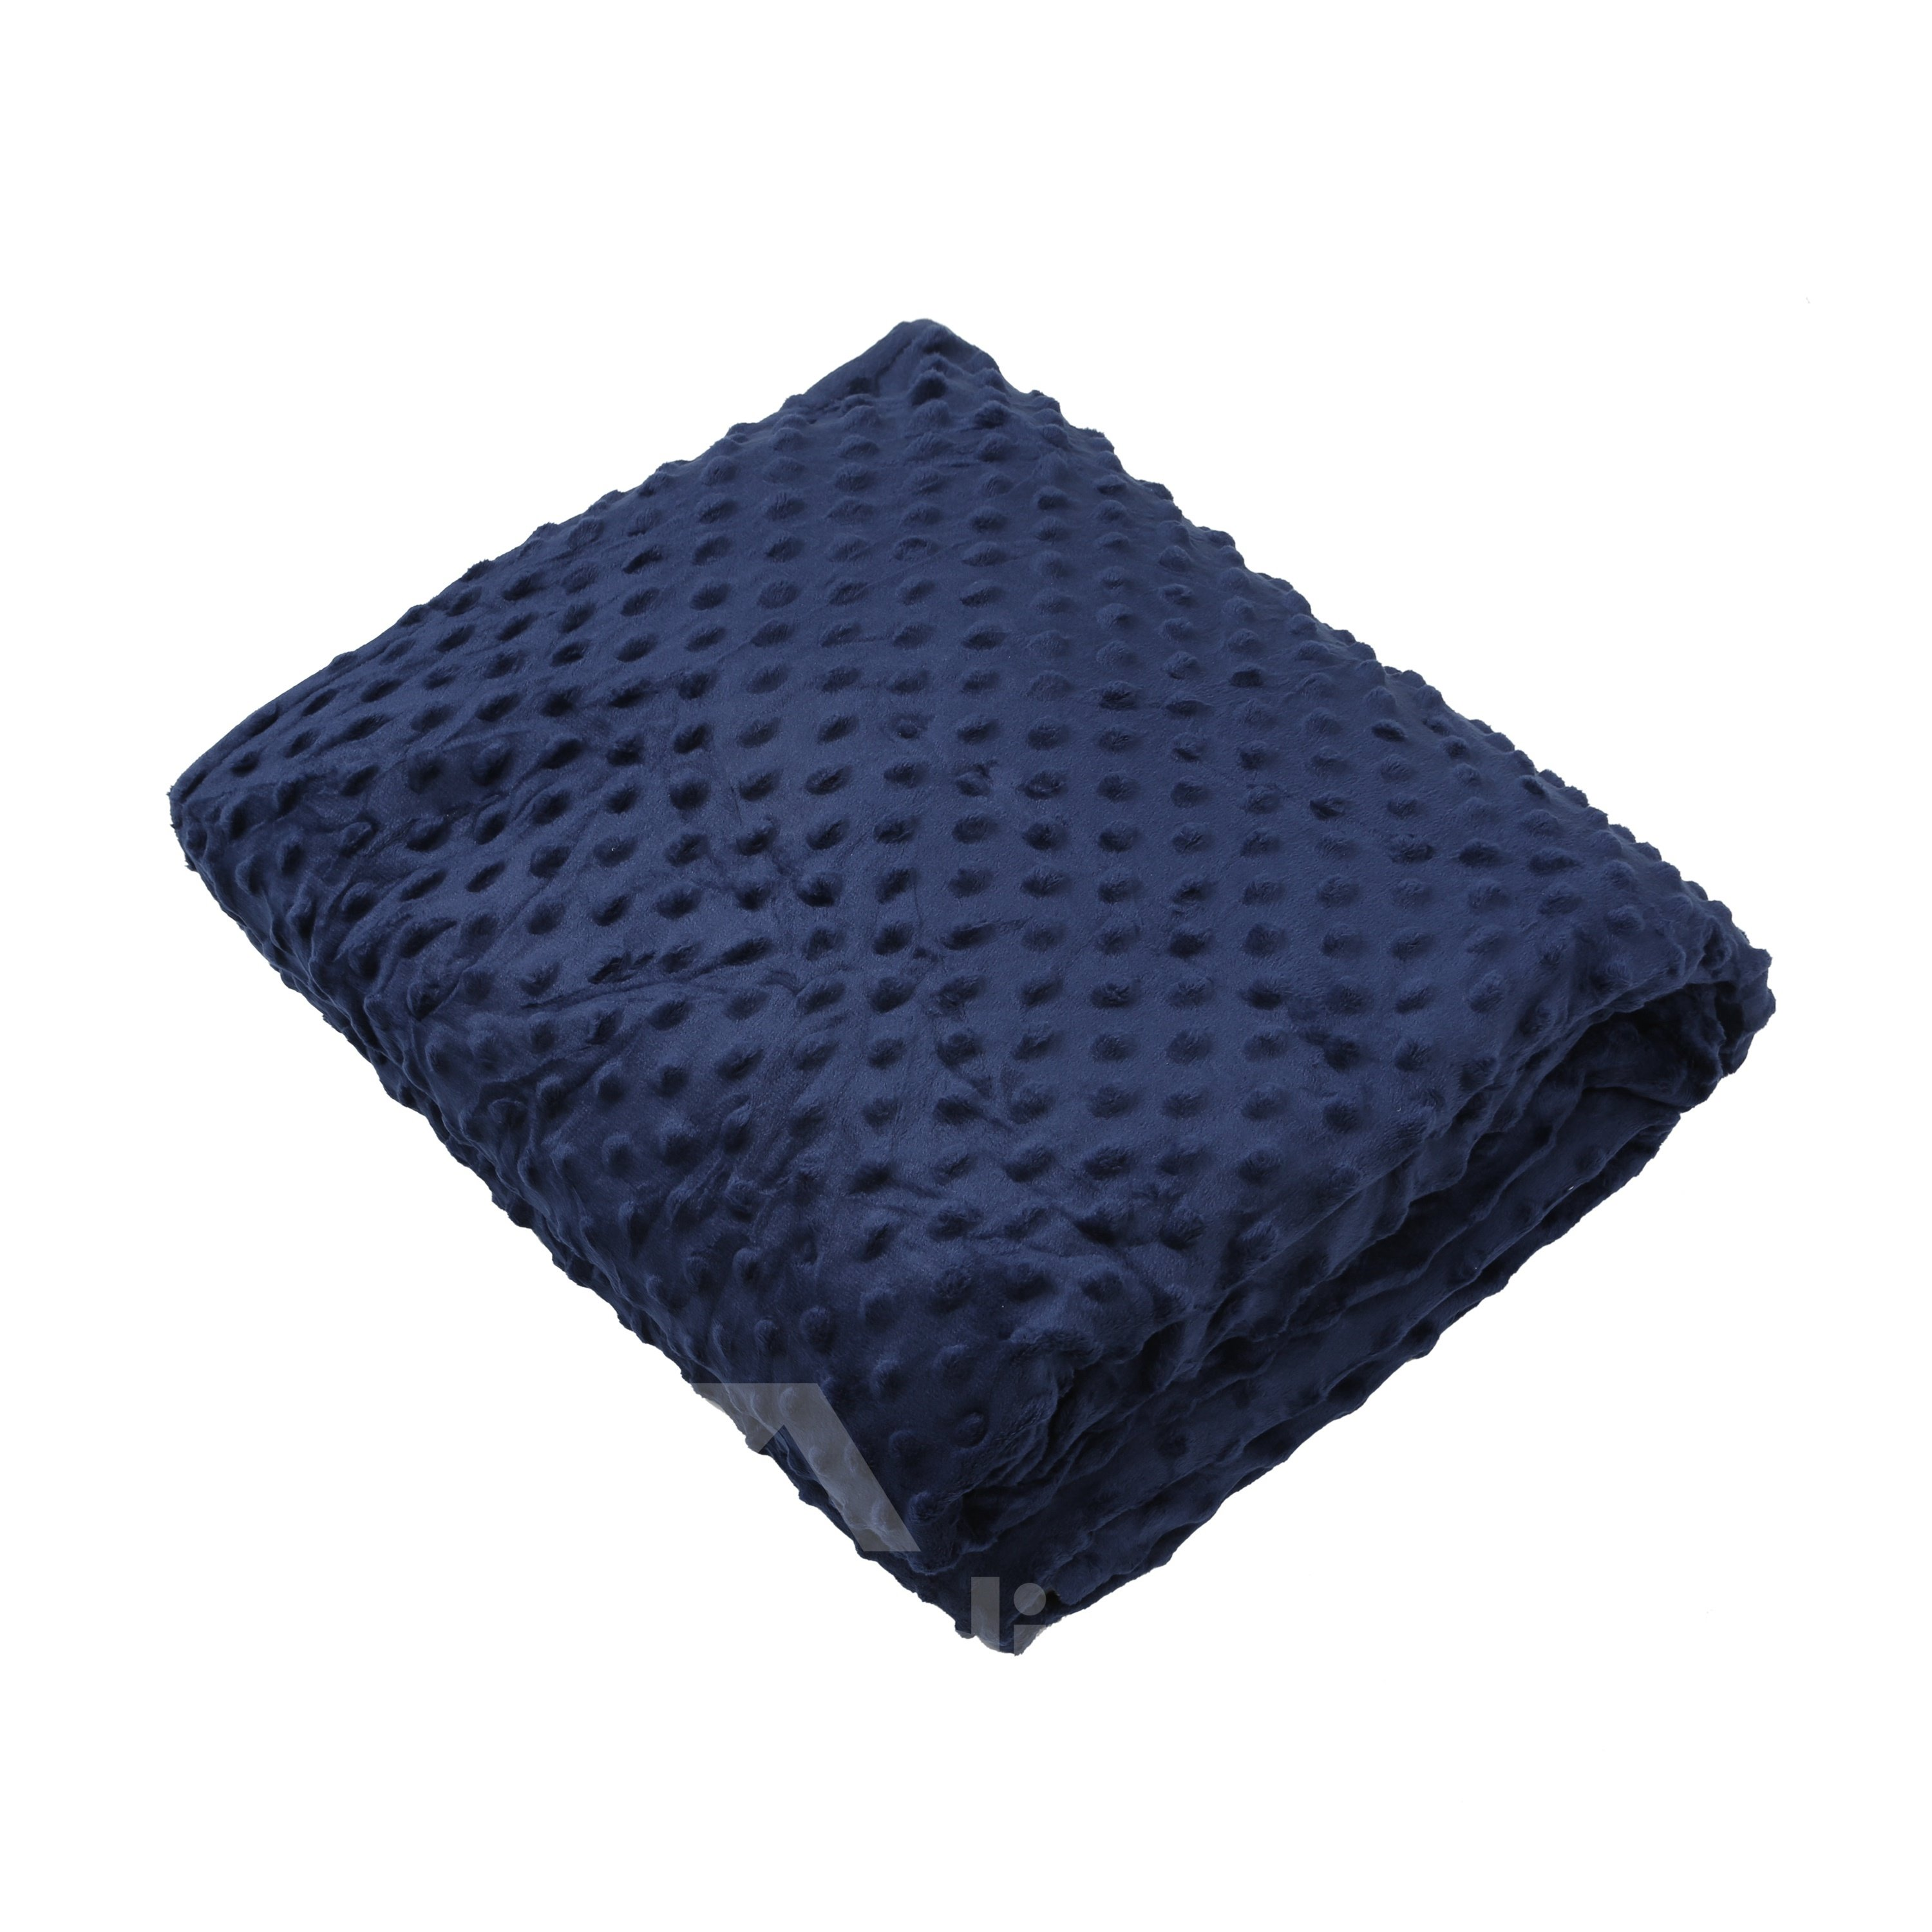 100% Cotton Quality Adult Removable Flannel Duvet Cover For Weighted Blanket